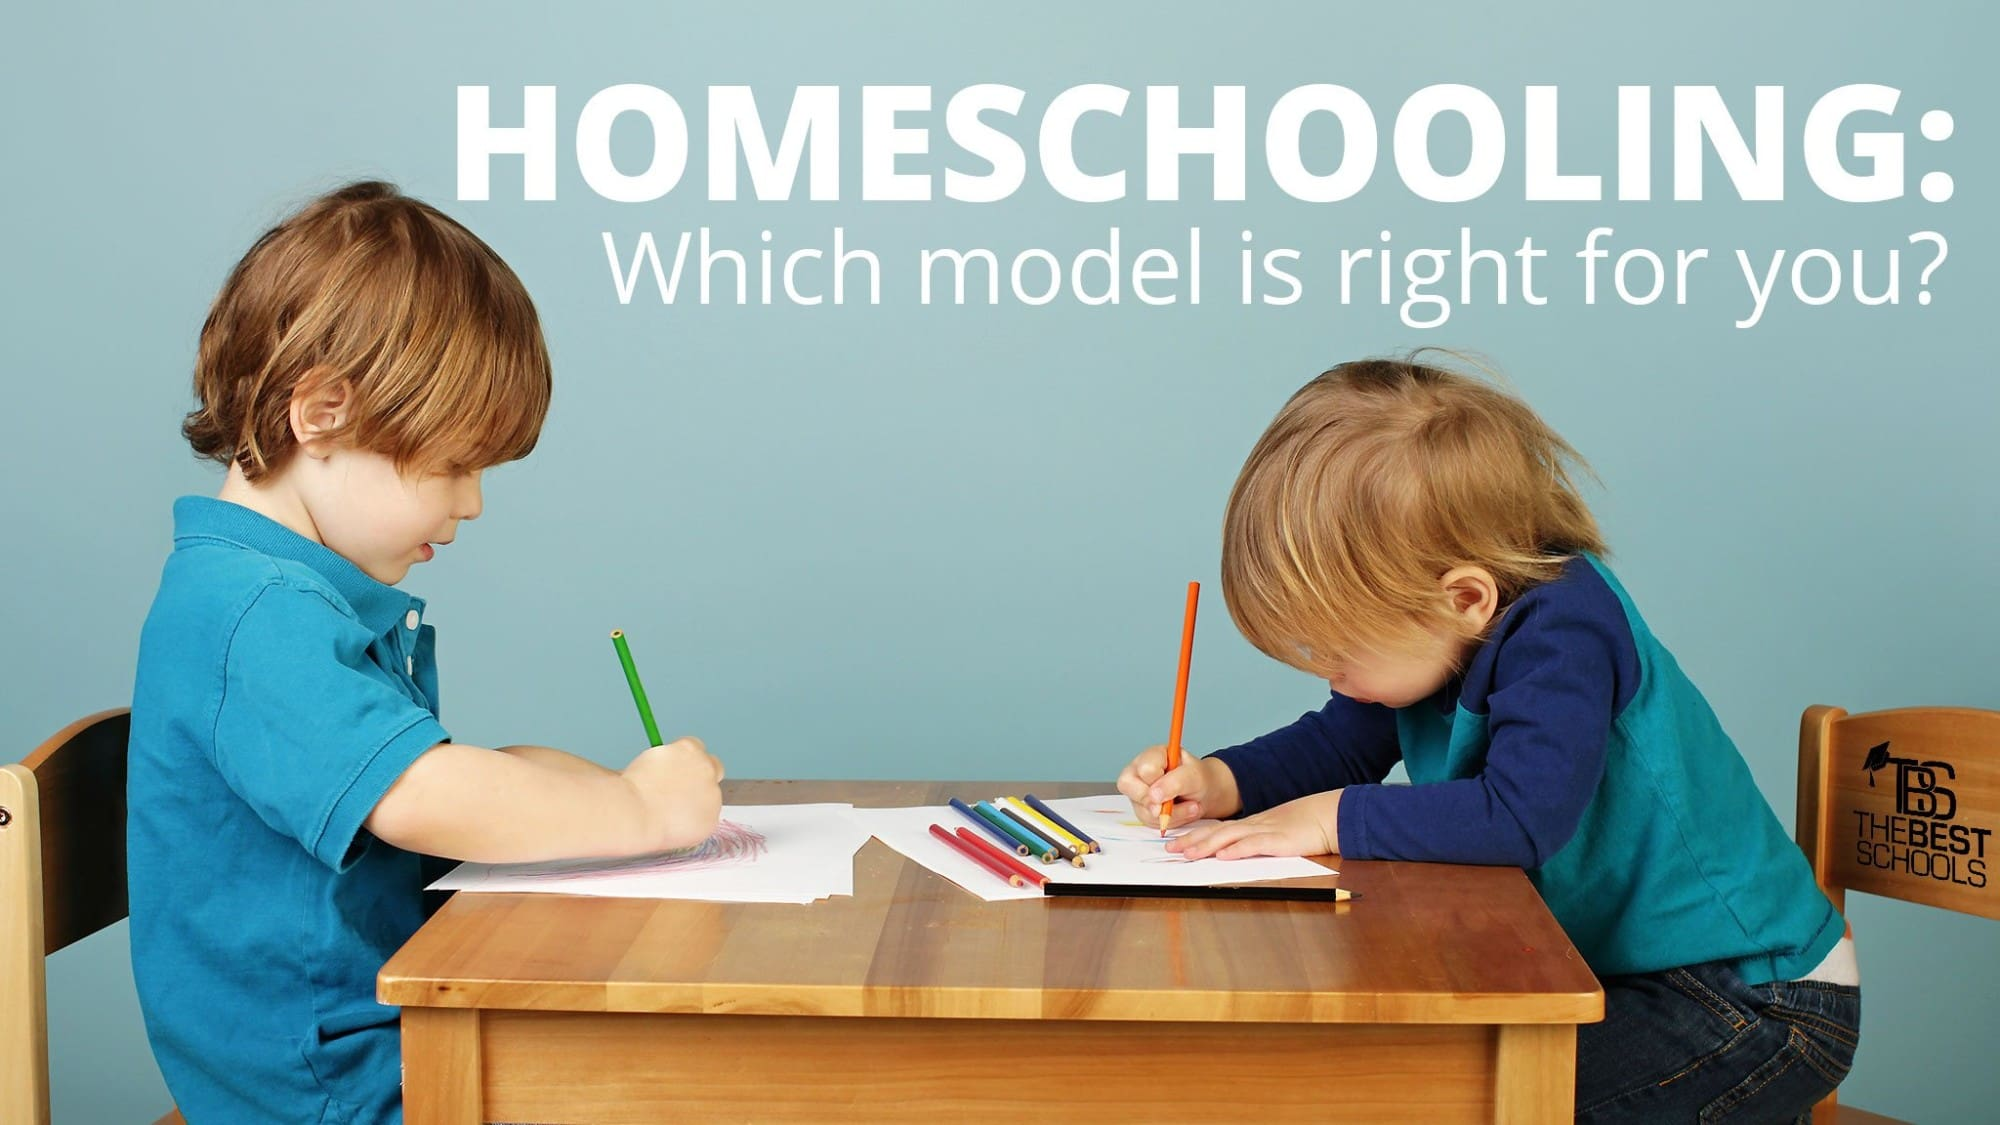 homeschooling advantages and disadvantages essay